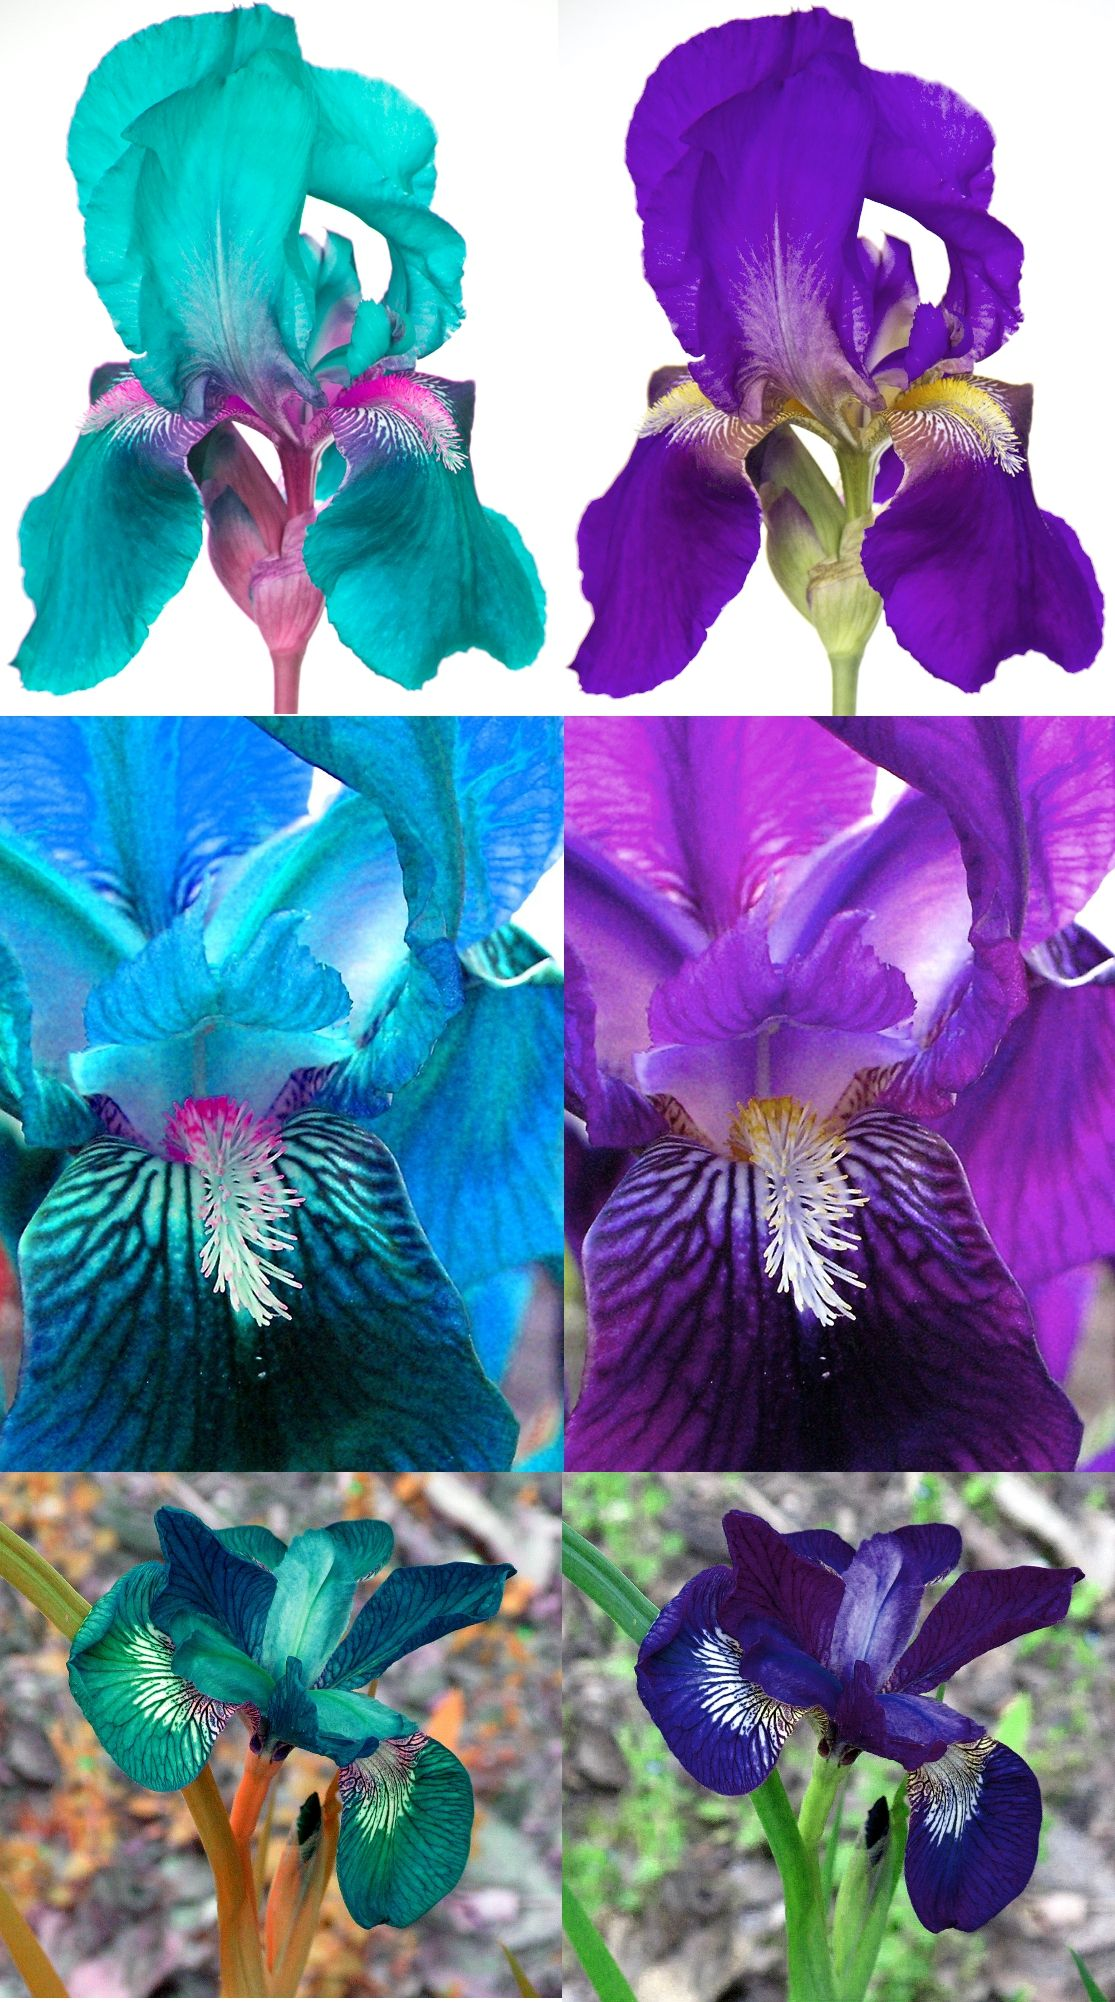 Left Photoshopped Pink And Turquoise Aquamarine Irises Right Real Irises Iris Flowers Iris Dream Garden